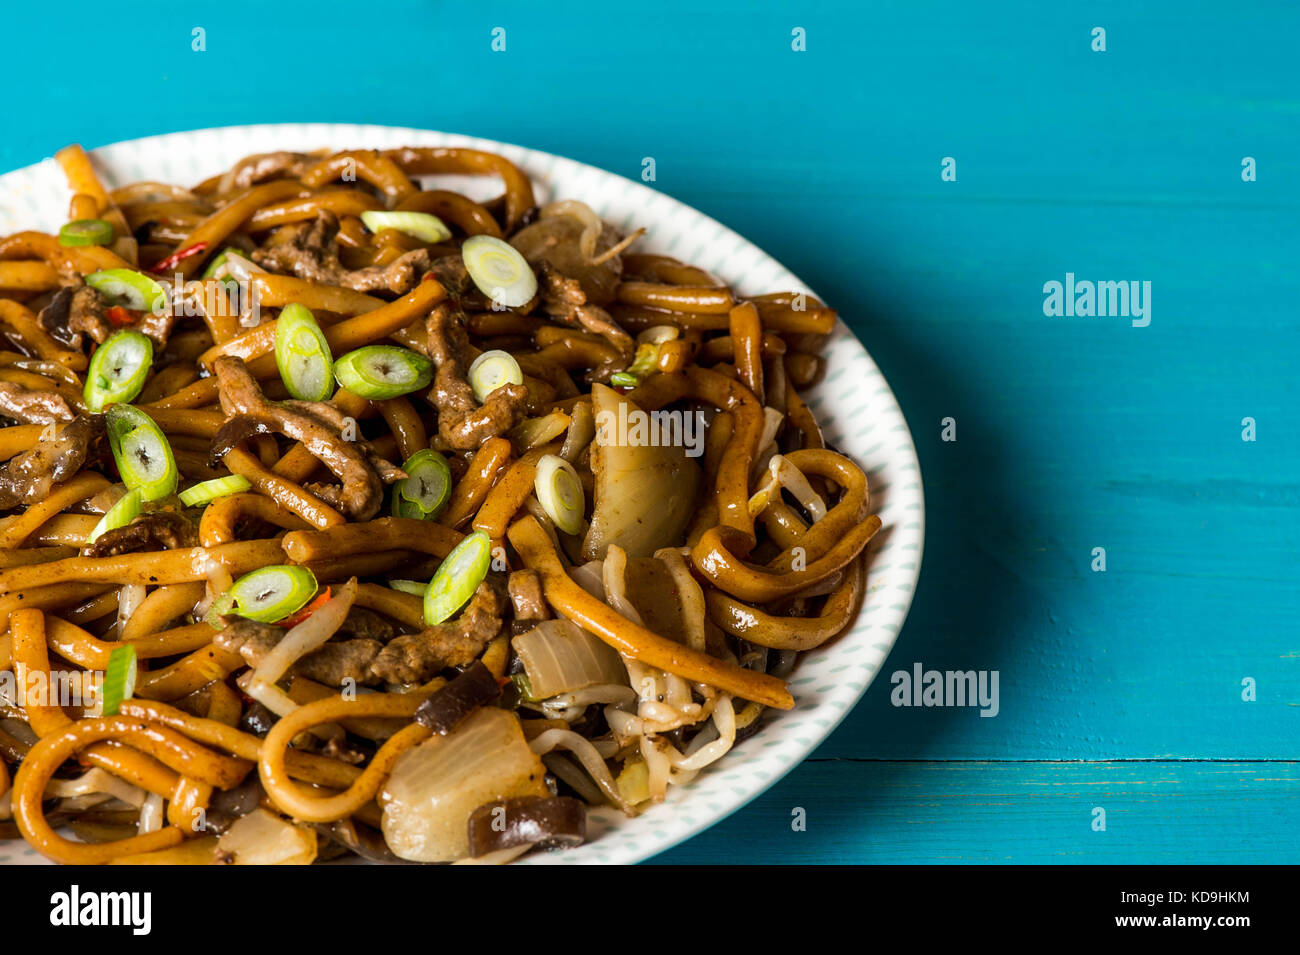 Chinese Food Division St